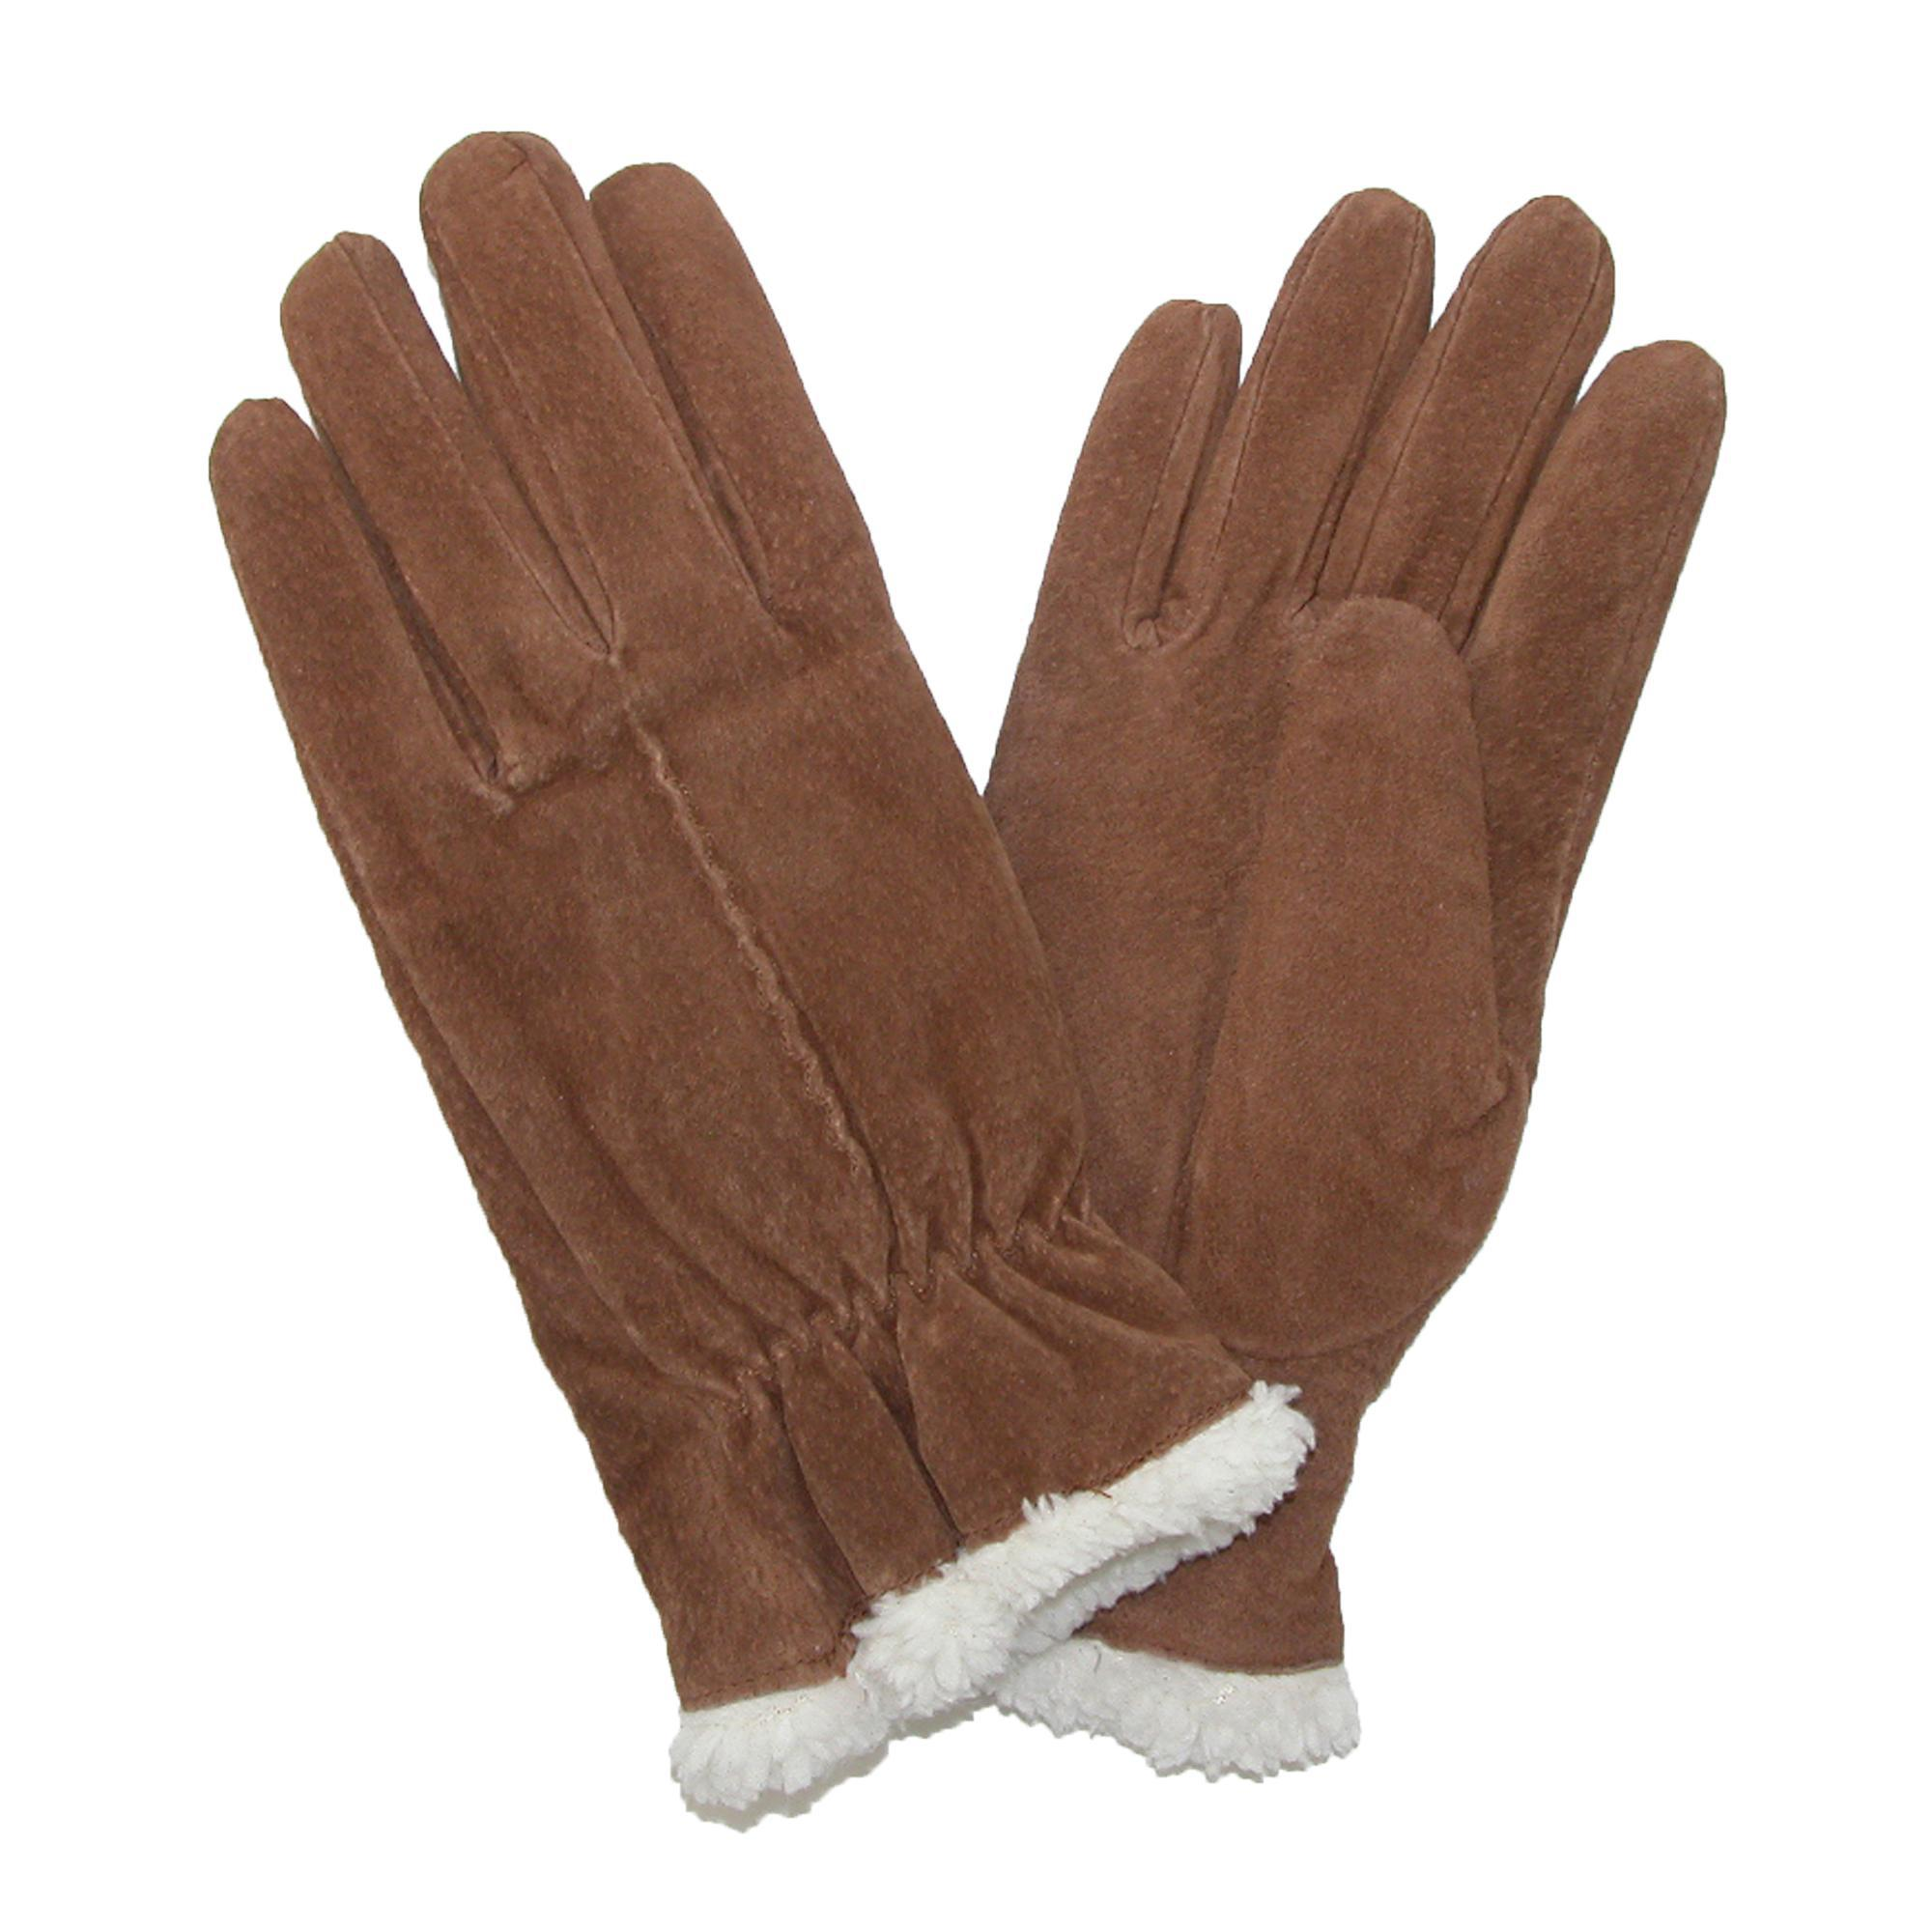 Isotoner womens leather gloves with fleece lining -  Picture 12 Of 14